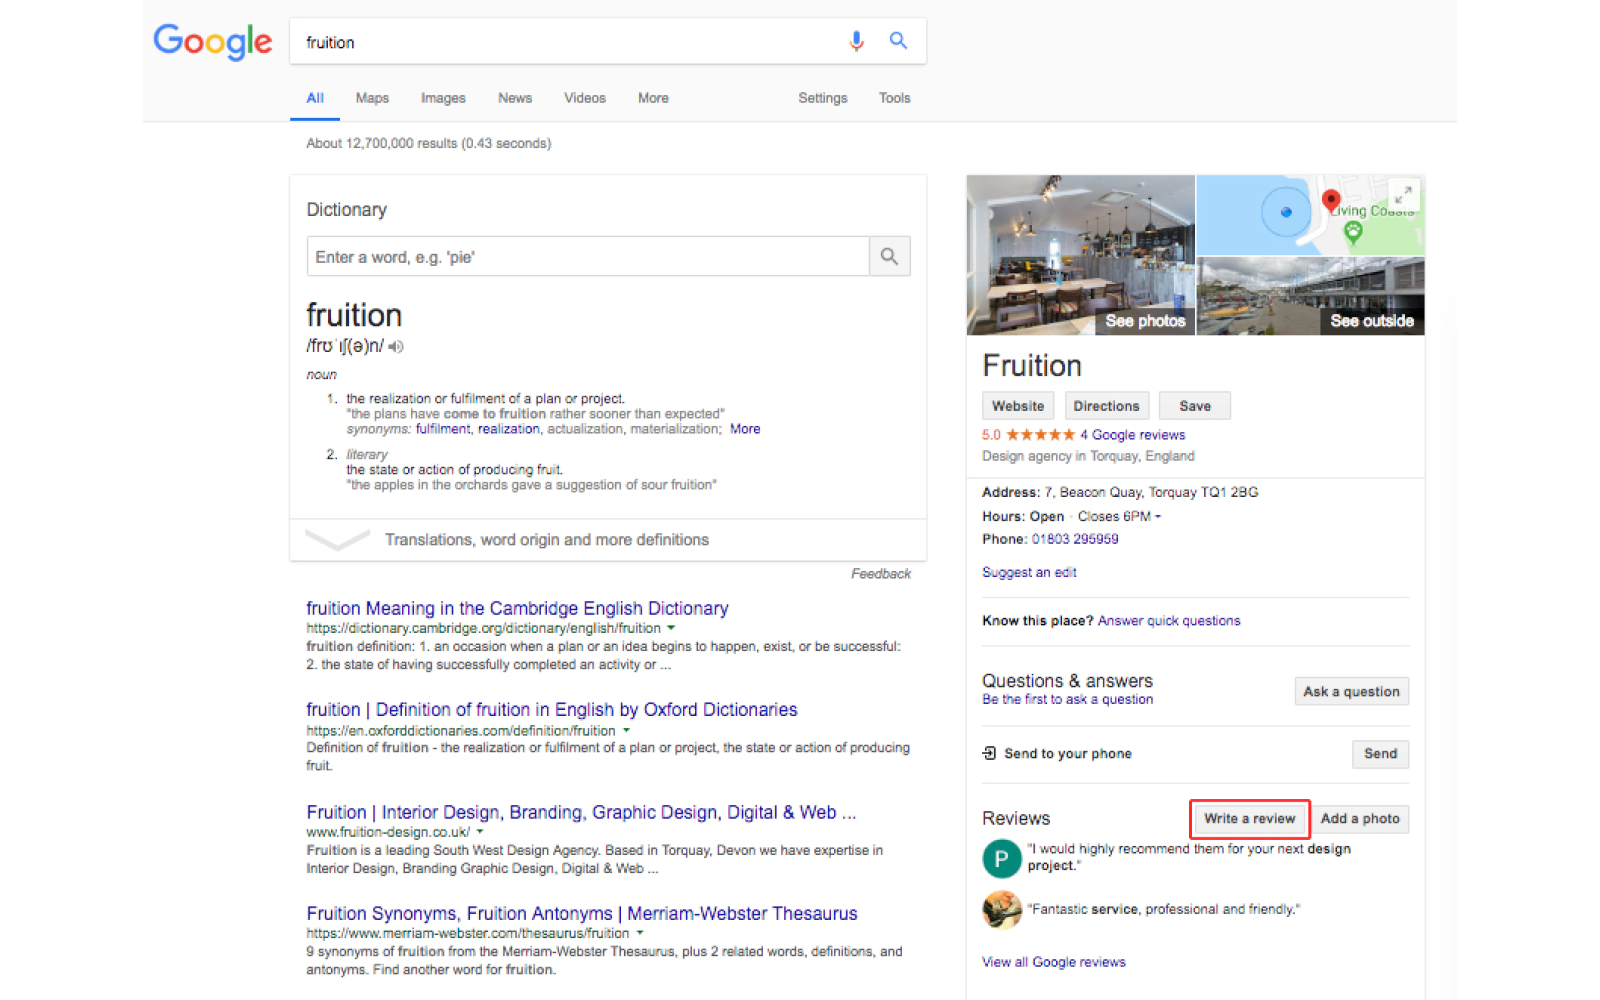 The importance of Google Reviews and how to write them